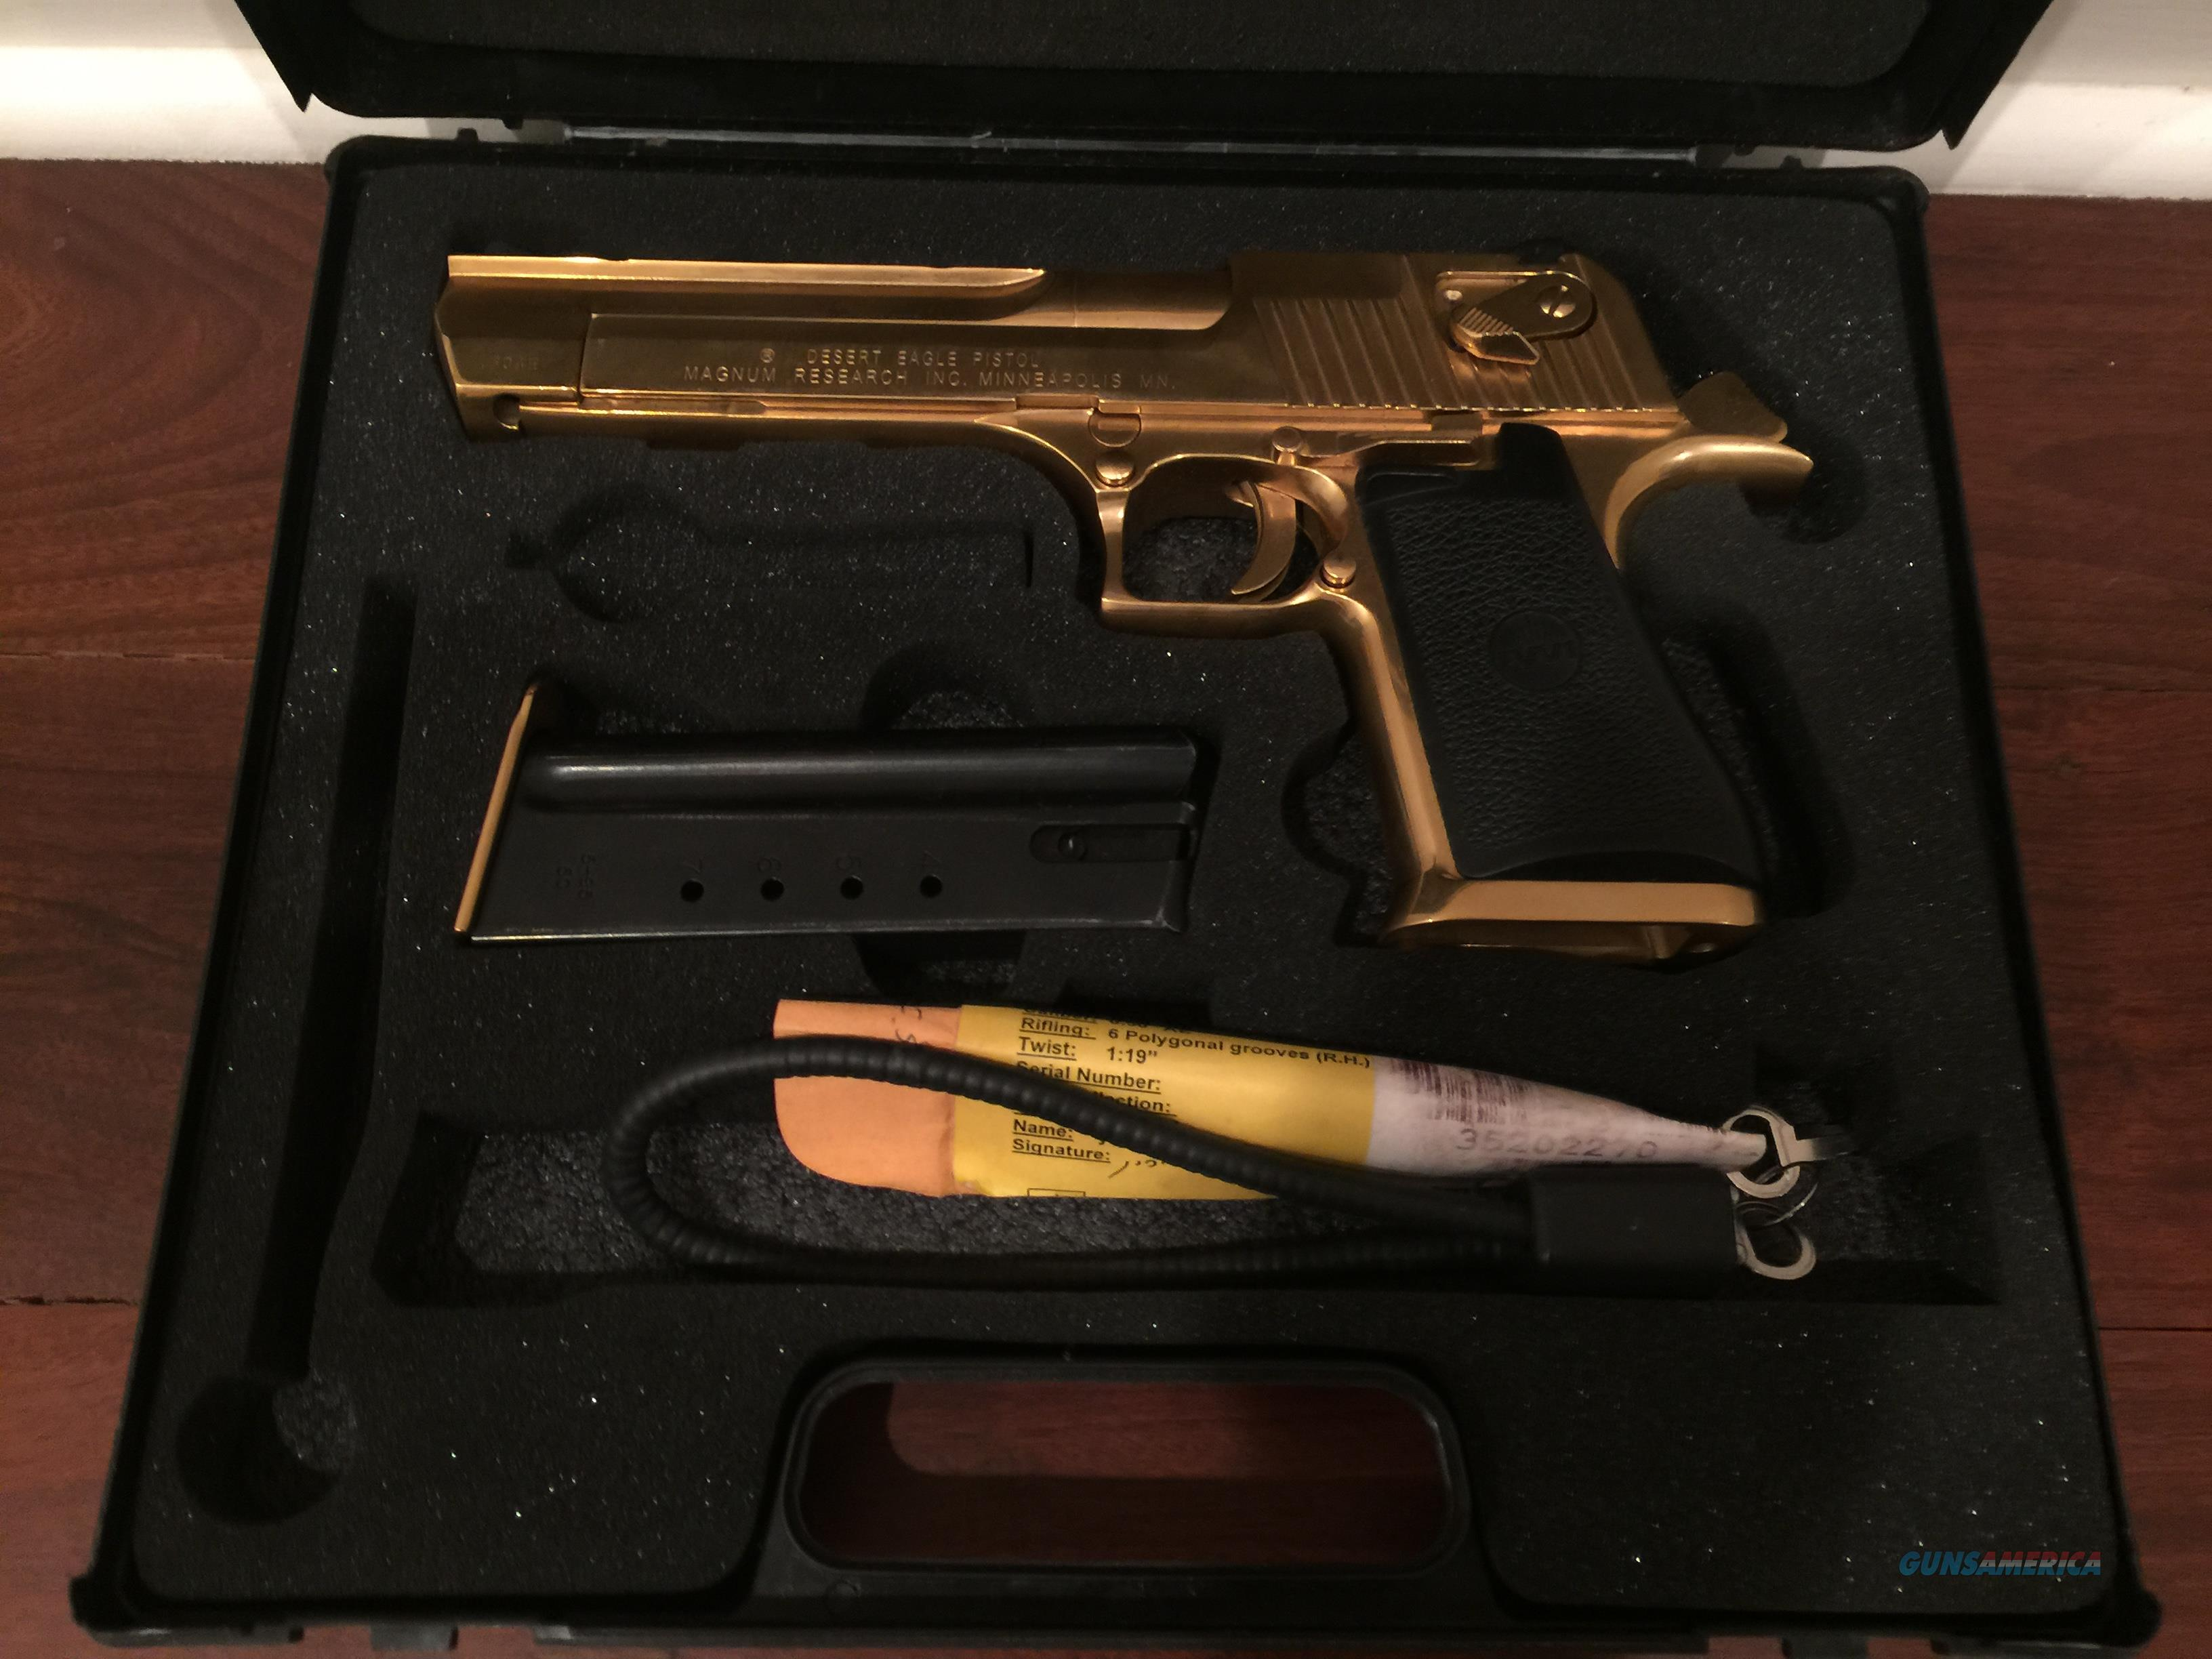 Magnum Research Desert Eagle, high polished 24K gold plated, 50 caliber AE, all papers-awesome showpiece!  Guns > Pistols > Desert Eagle/IMI Pistols > Desert Eagle